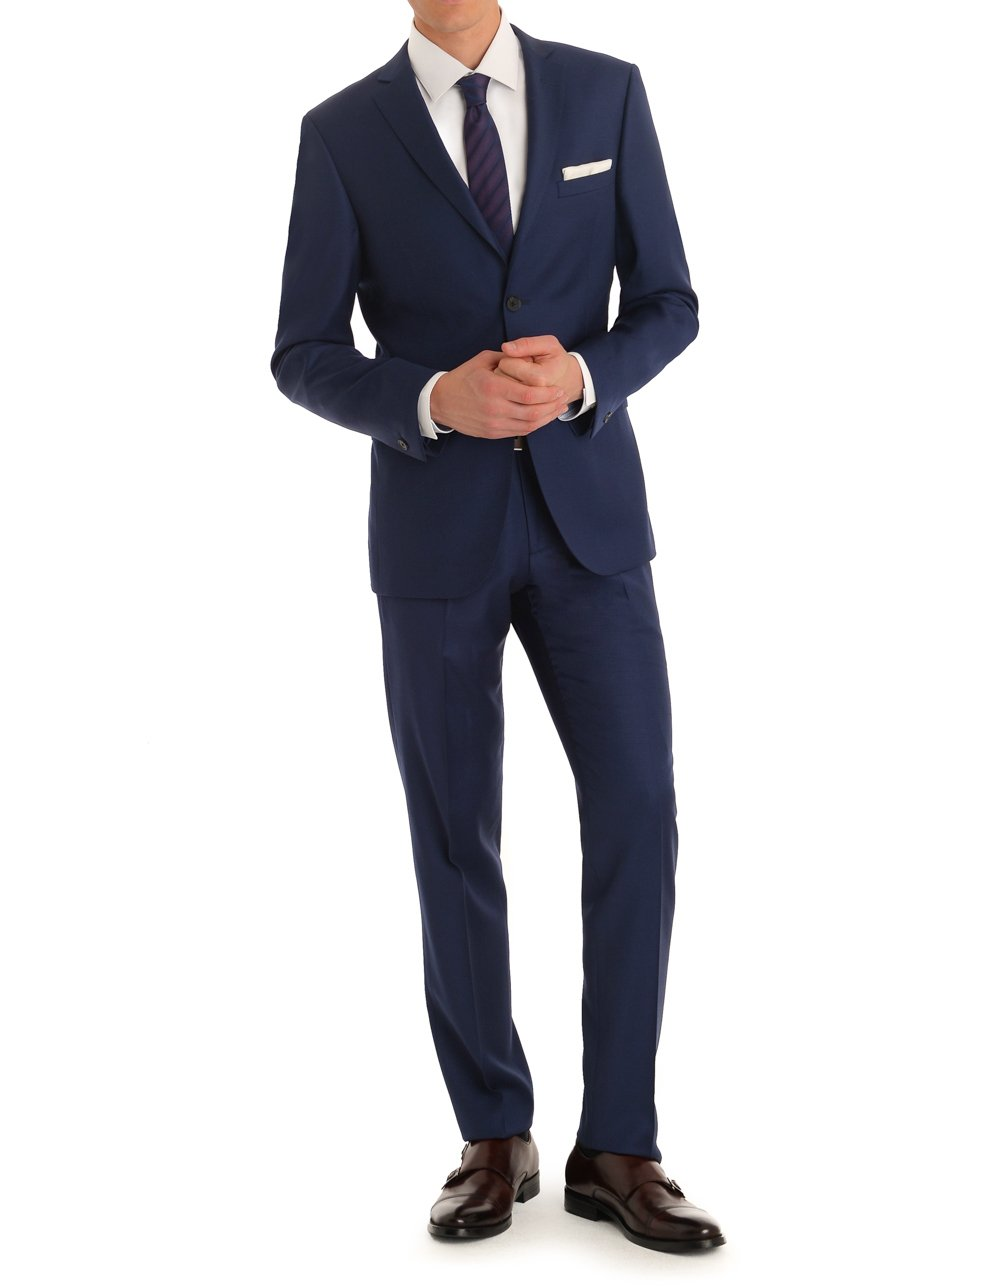 MDRN Uomo Men's Slim Fit 2 Piece Suit, Navy, 46L/40W